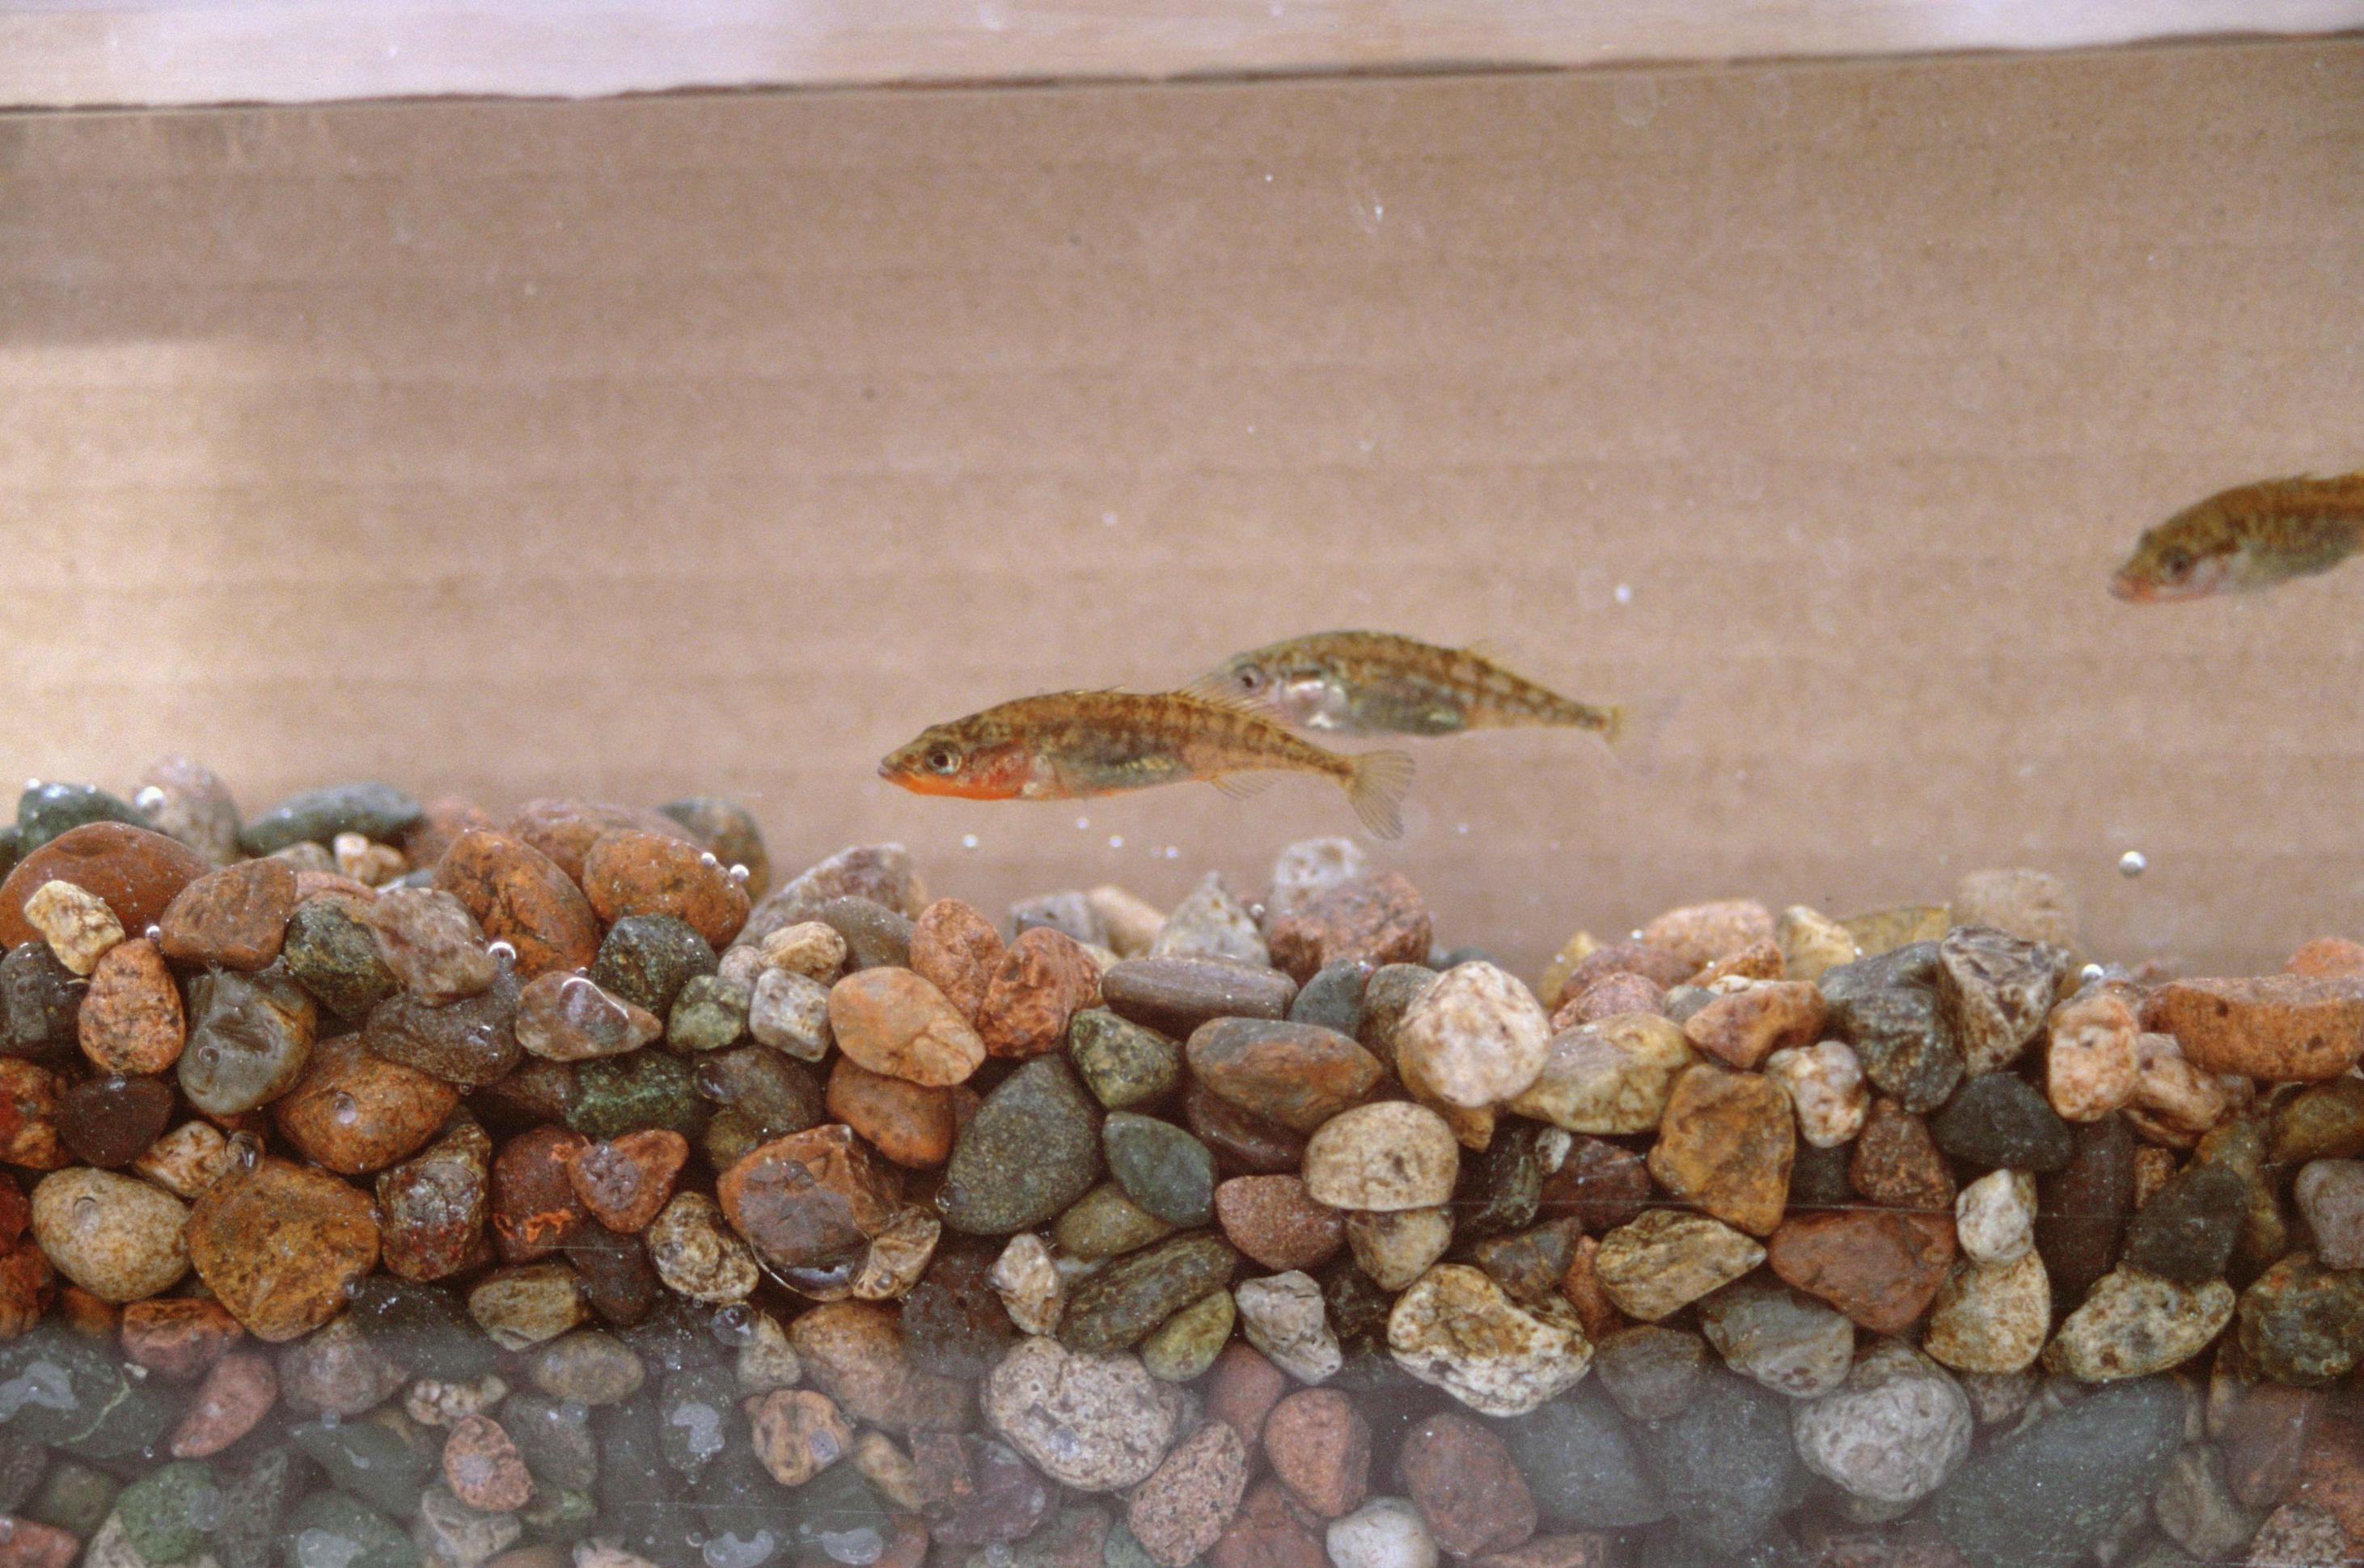 Picture of 3 Unarmored Three Spine Sticklebacks